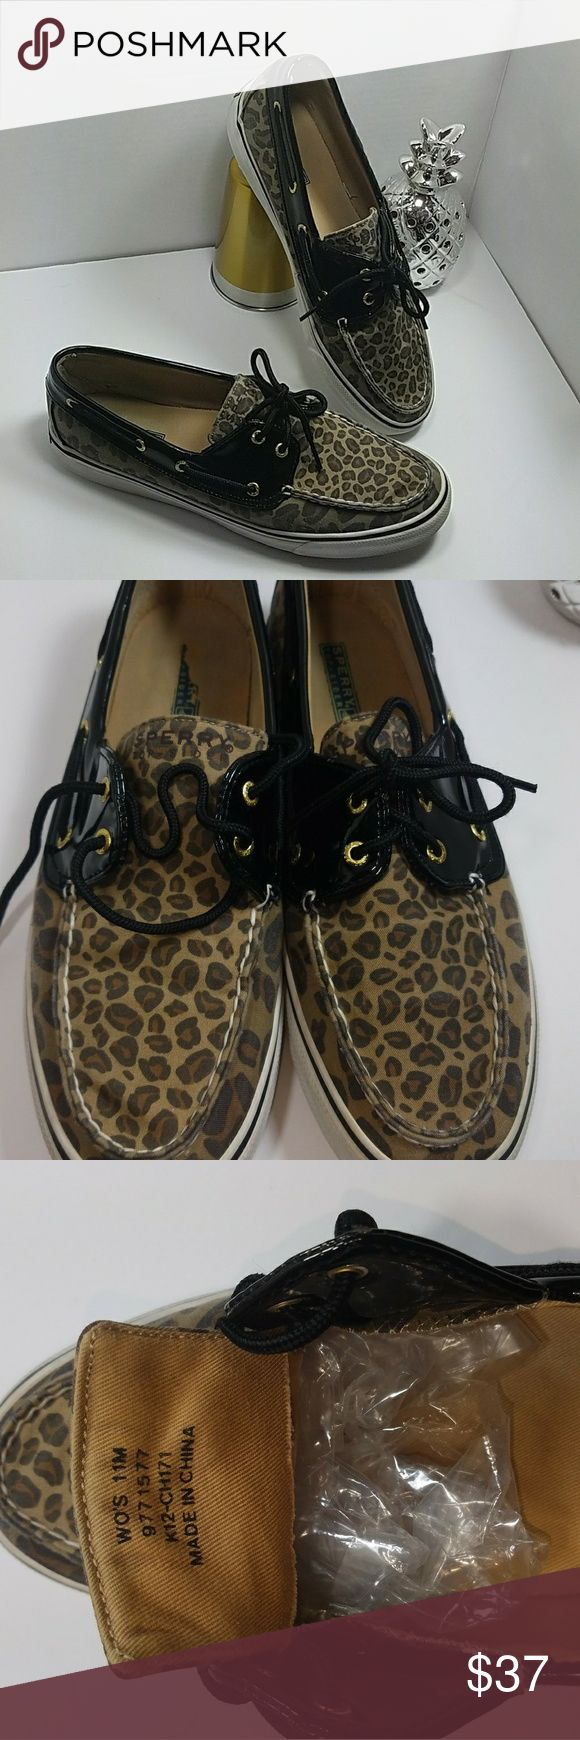 Sperry Boatshoe leopard print patent leather Women's size 11. Condition shown on pics. Leopard print. Patent Leather accent. Pre-loved Sperry Top-Sider Shoes Flats & Loafers